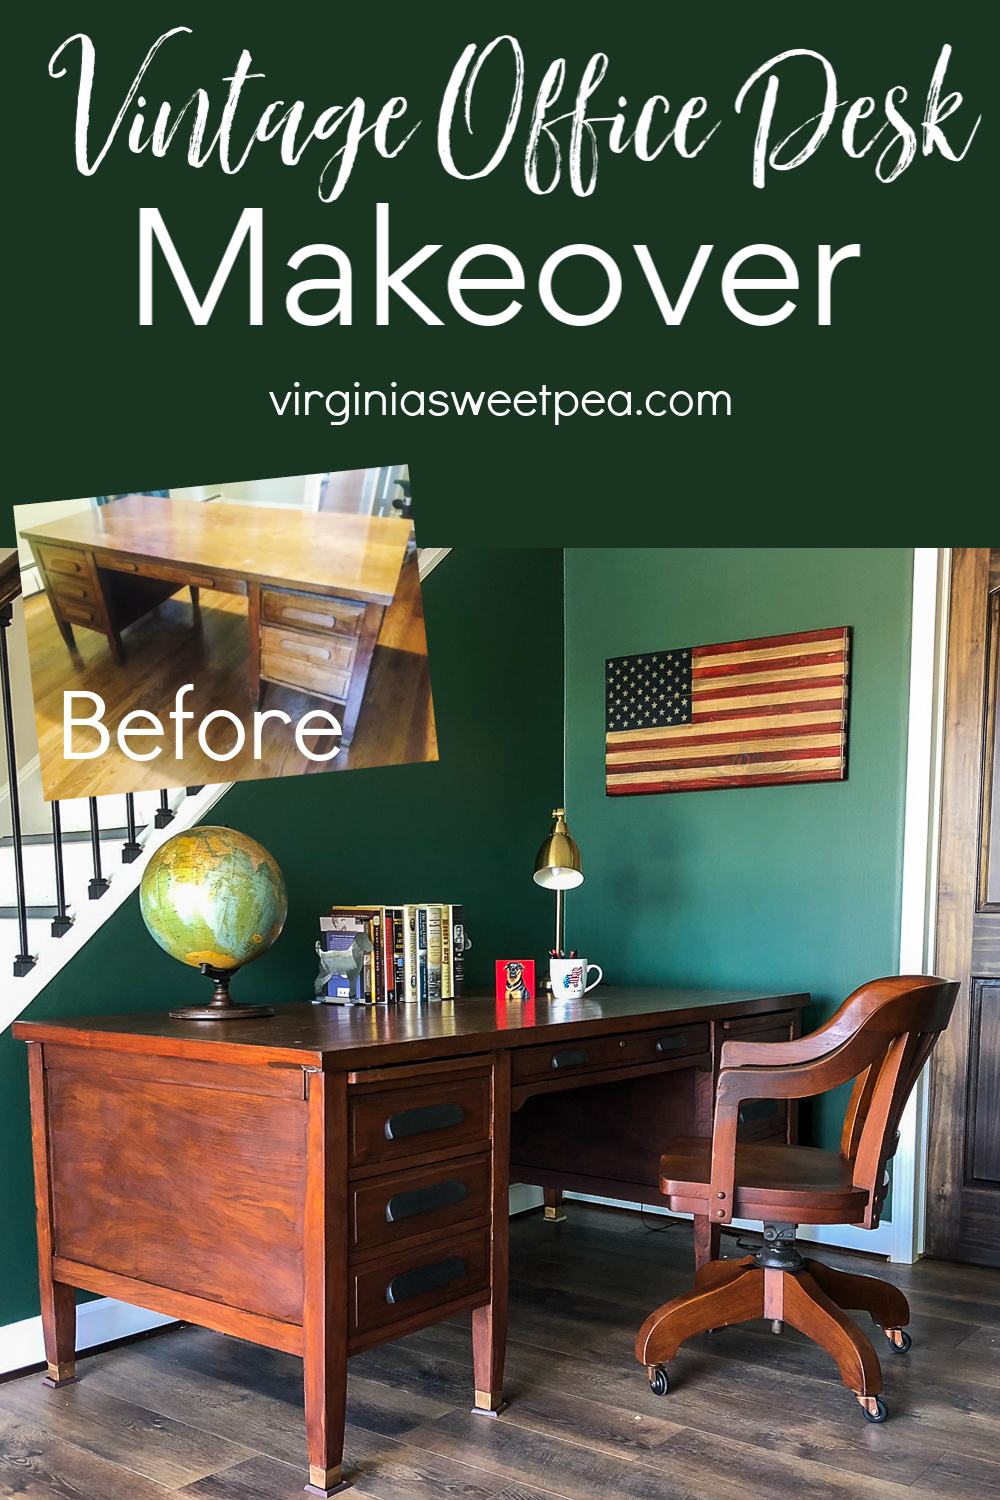 Vintage Office Desk Makeover - A vintage office desk gets repaired and refinished.  See the repairs and the steps used to refinish this beautiful old desk.  #vintageofficedesk #vintagedesk #deskmakeover #officedeskmakeover #furniturerefinishing #virginiasweetpea via @spaula